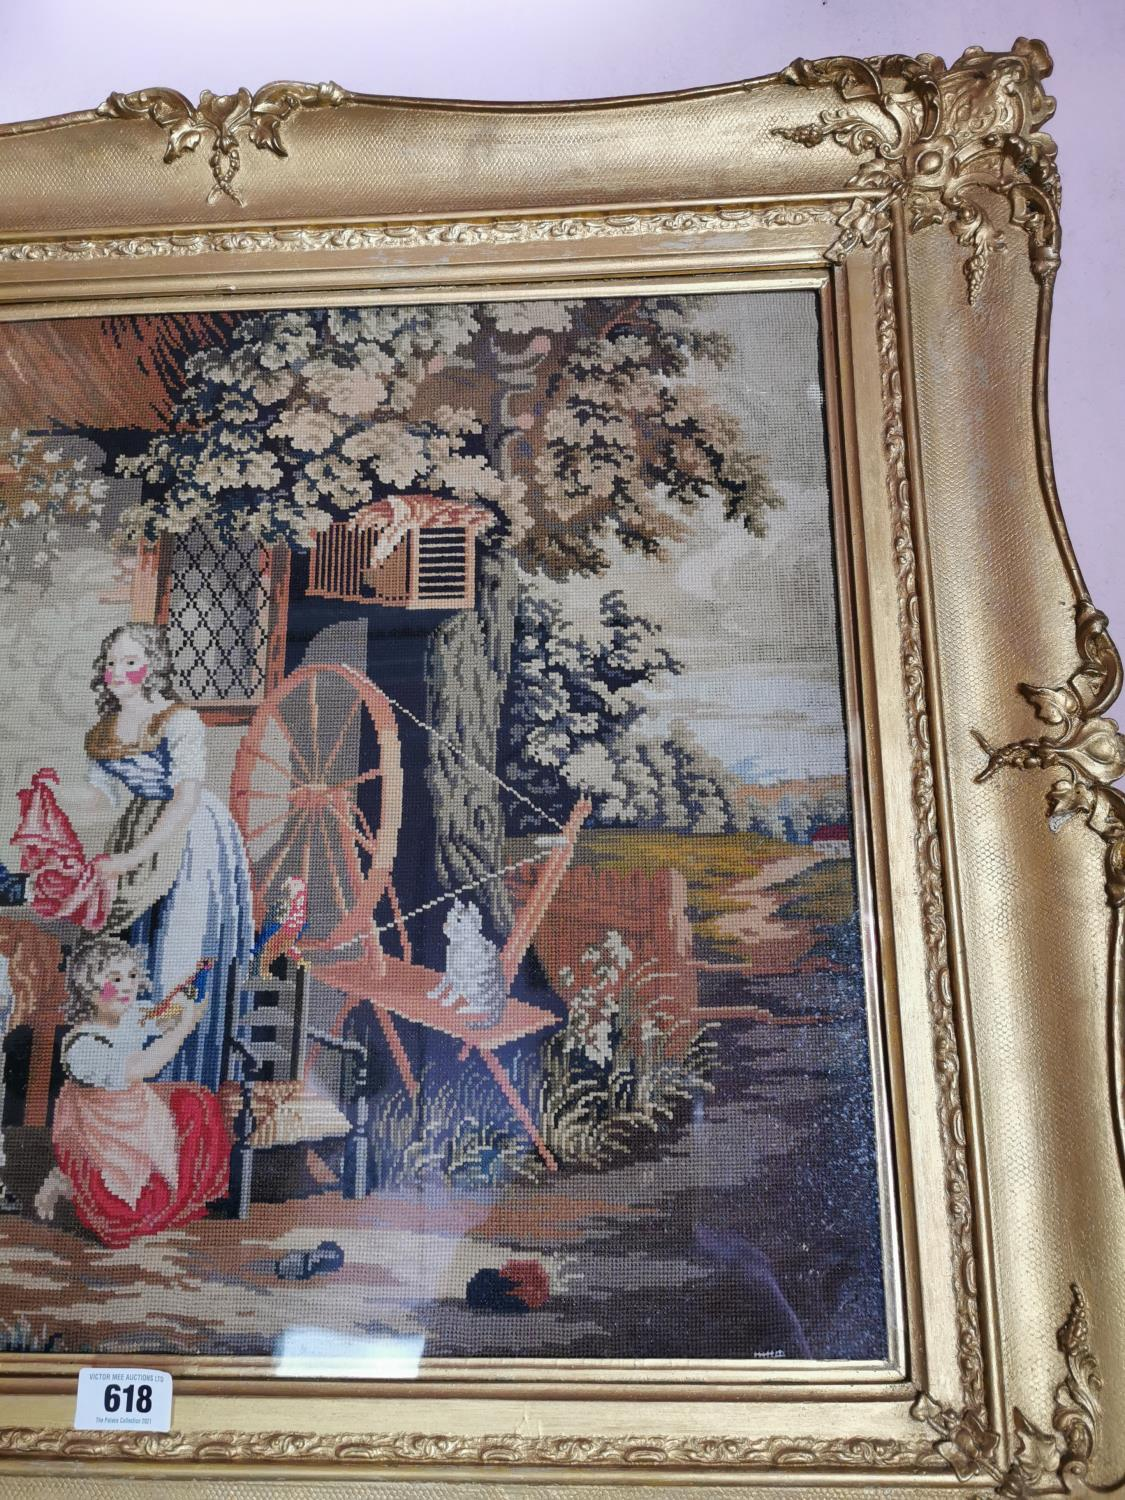 Early 20th C. tapestry Family scene. - Image 3 of 3